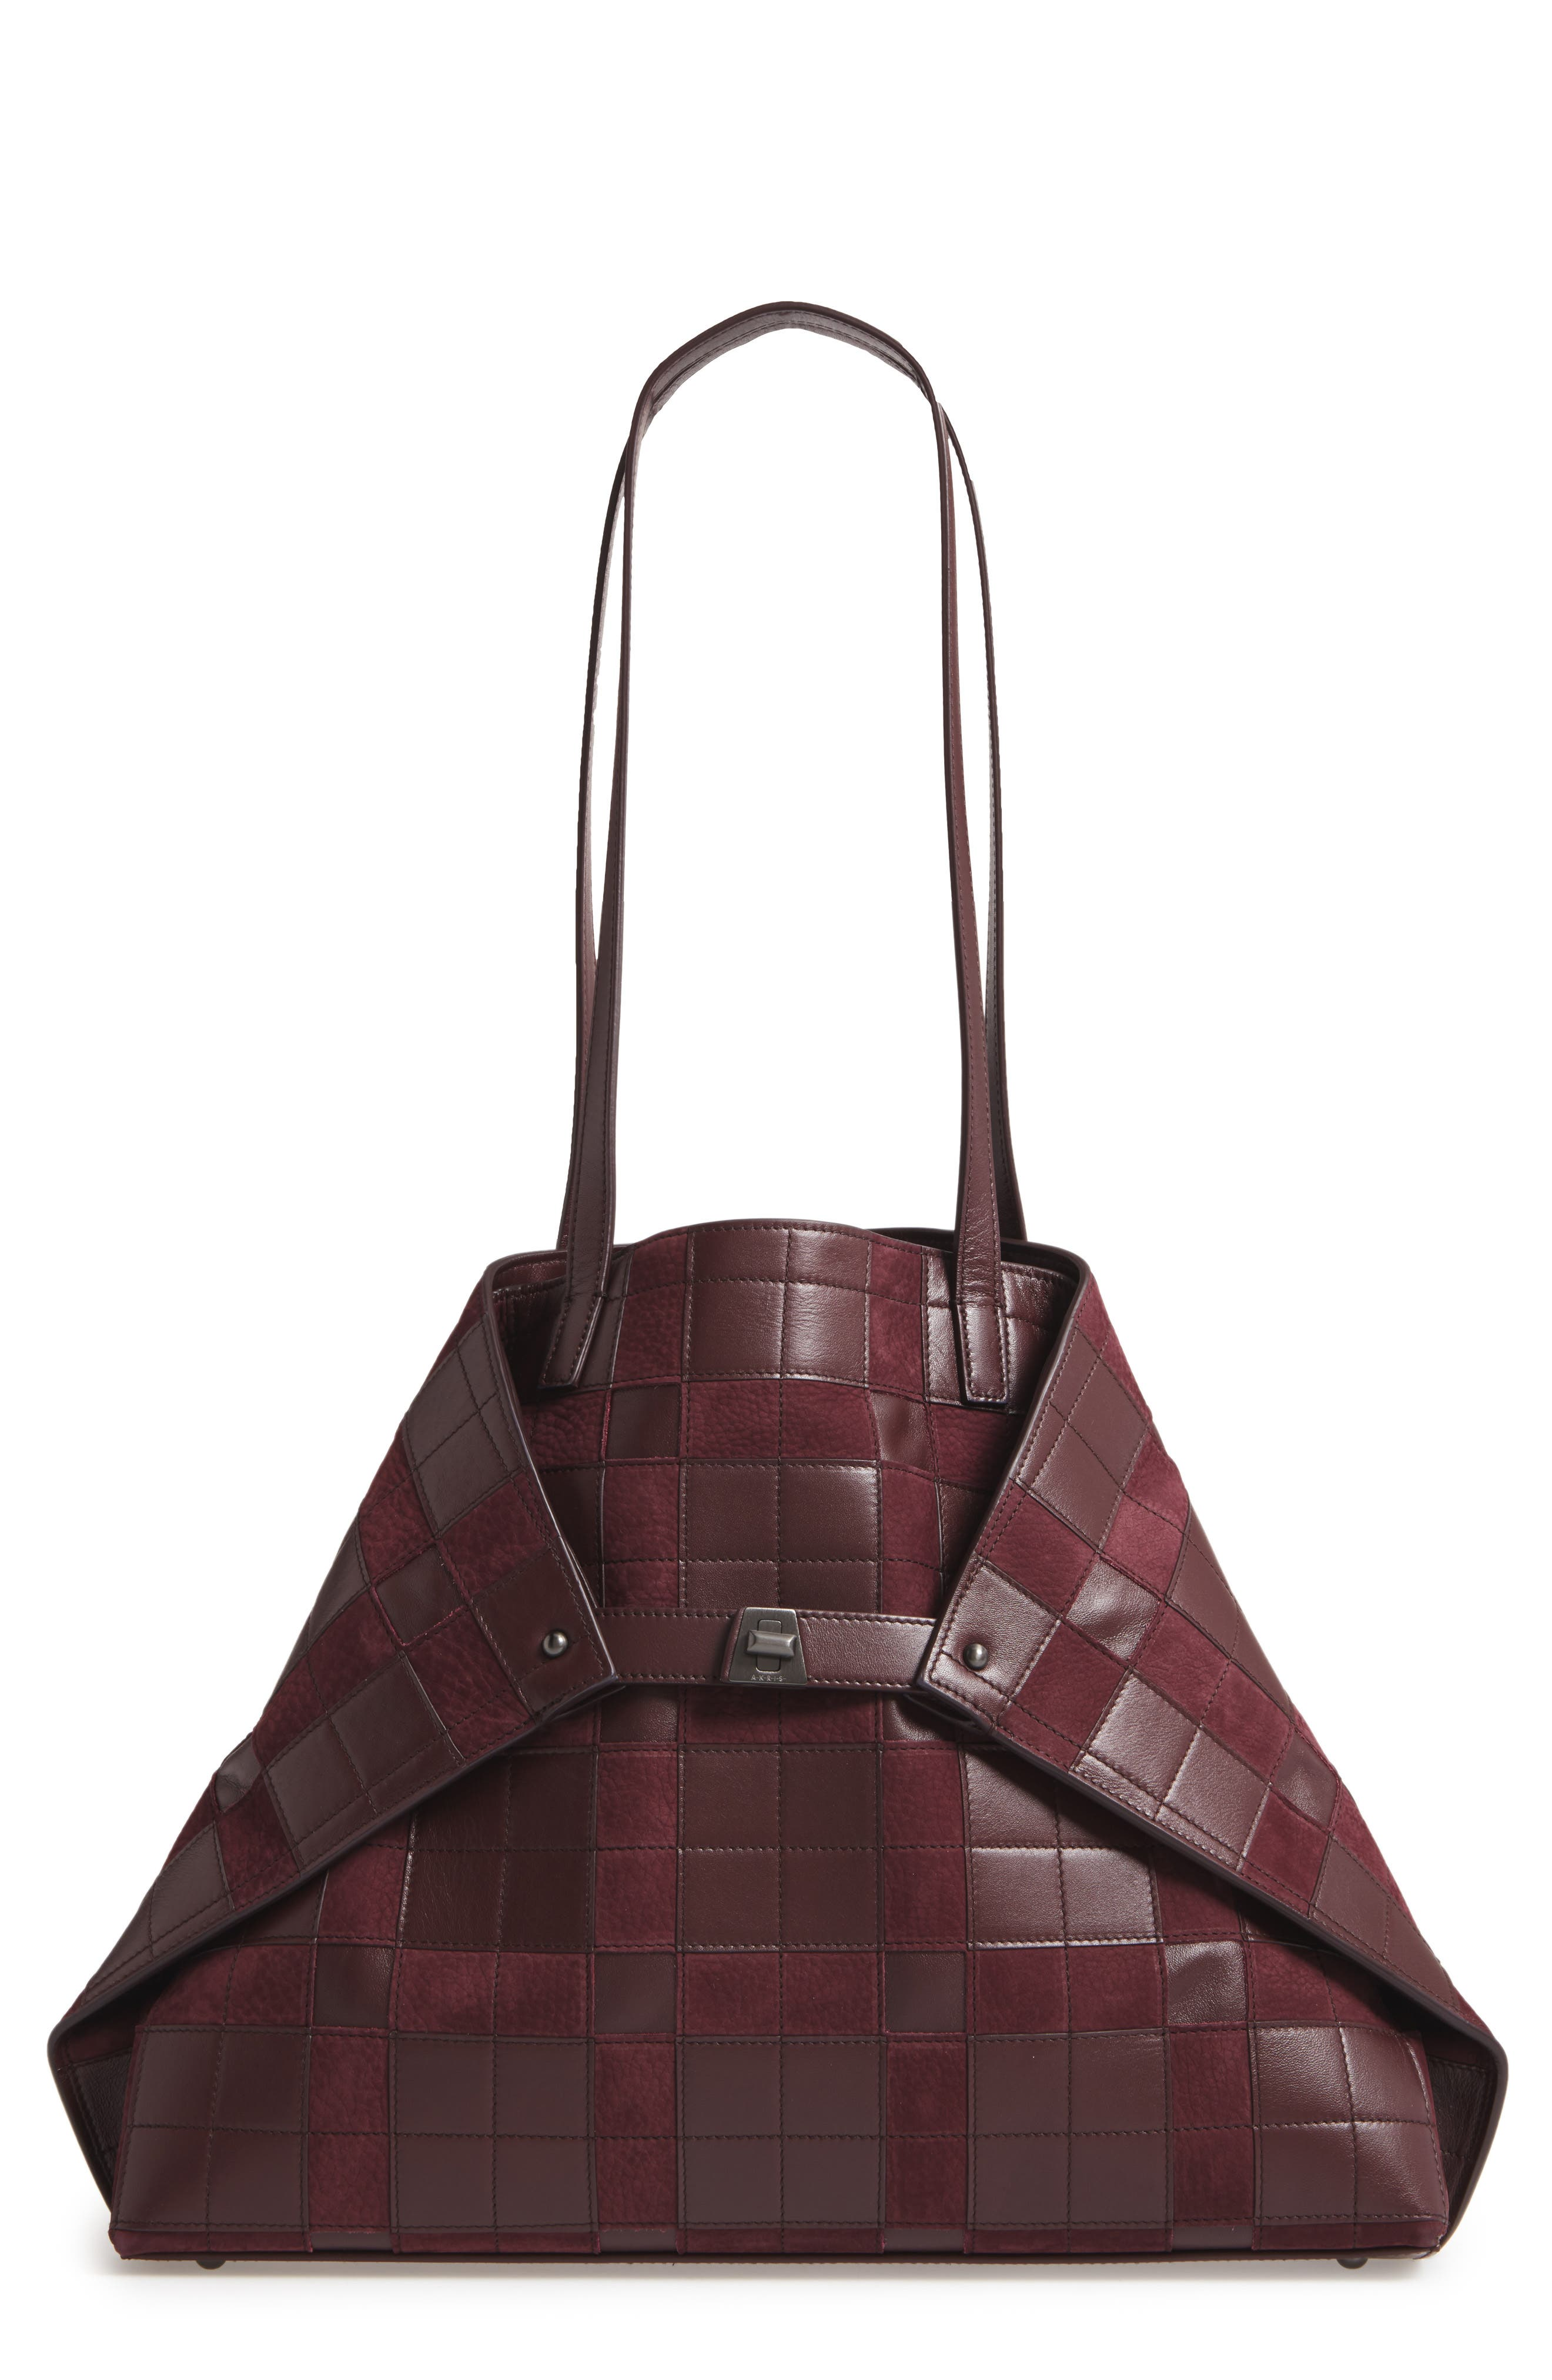 Medium AI Leather Shoulder Tote,                             Main thumbnail 1, color,                             Burgundy